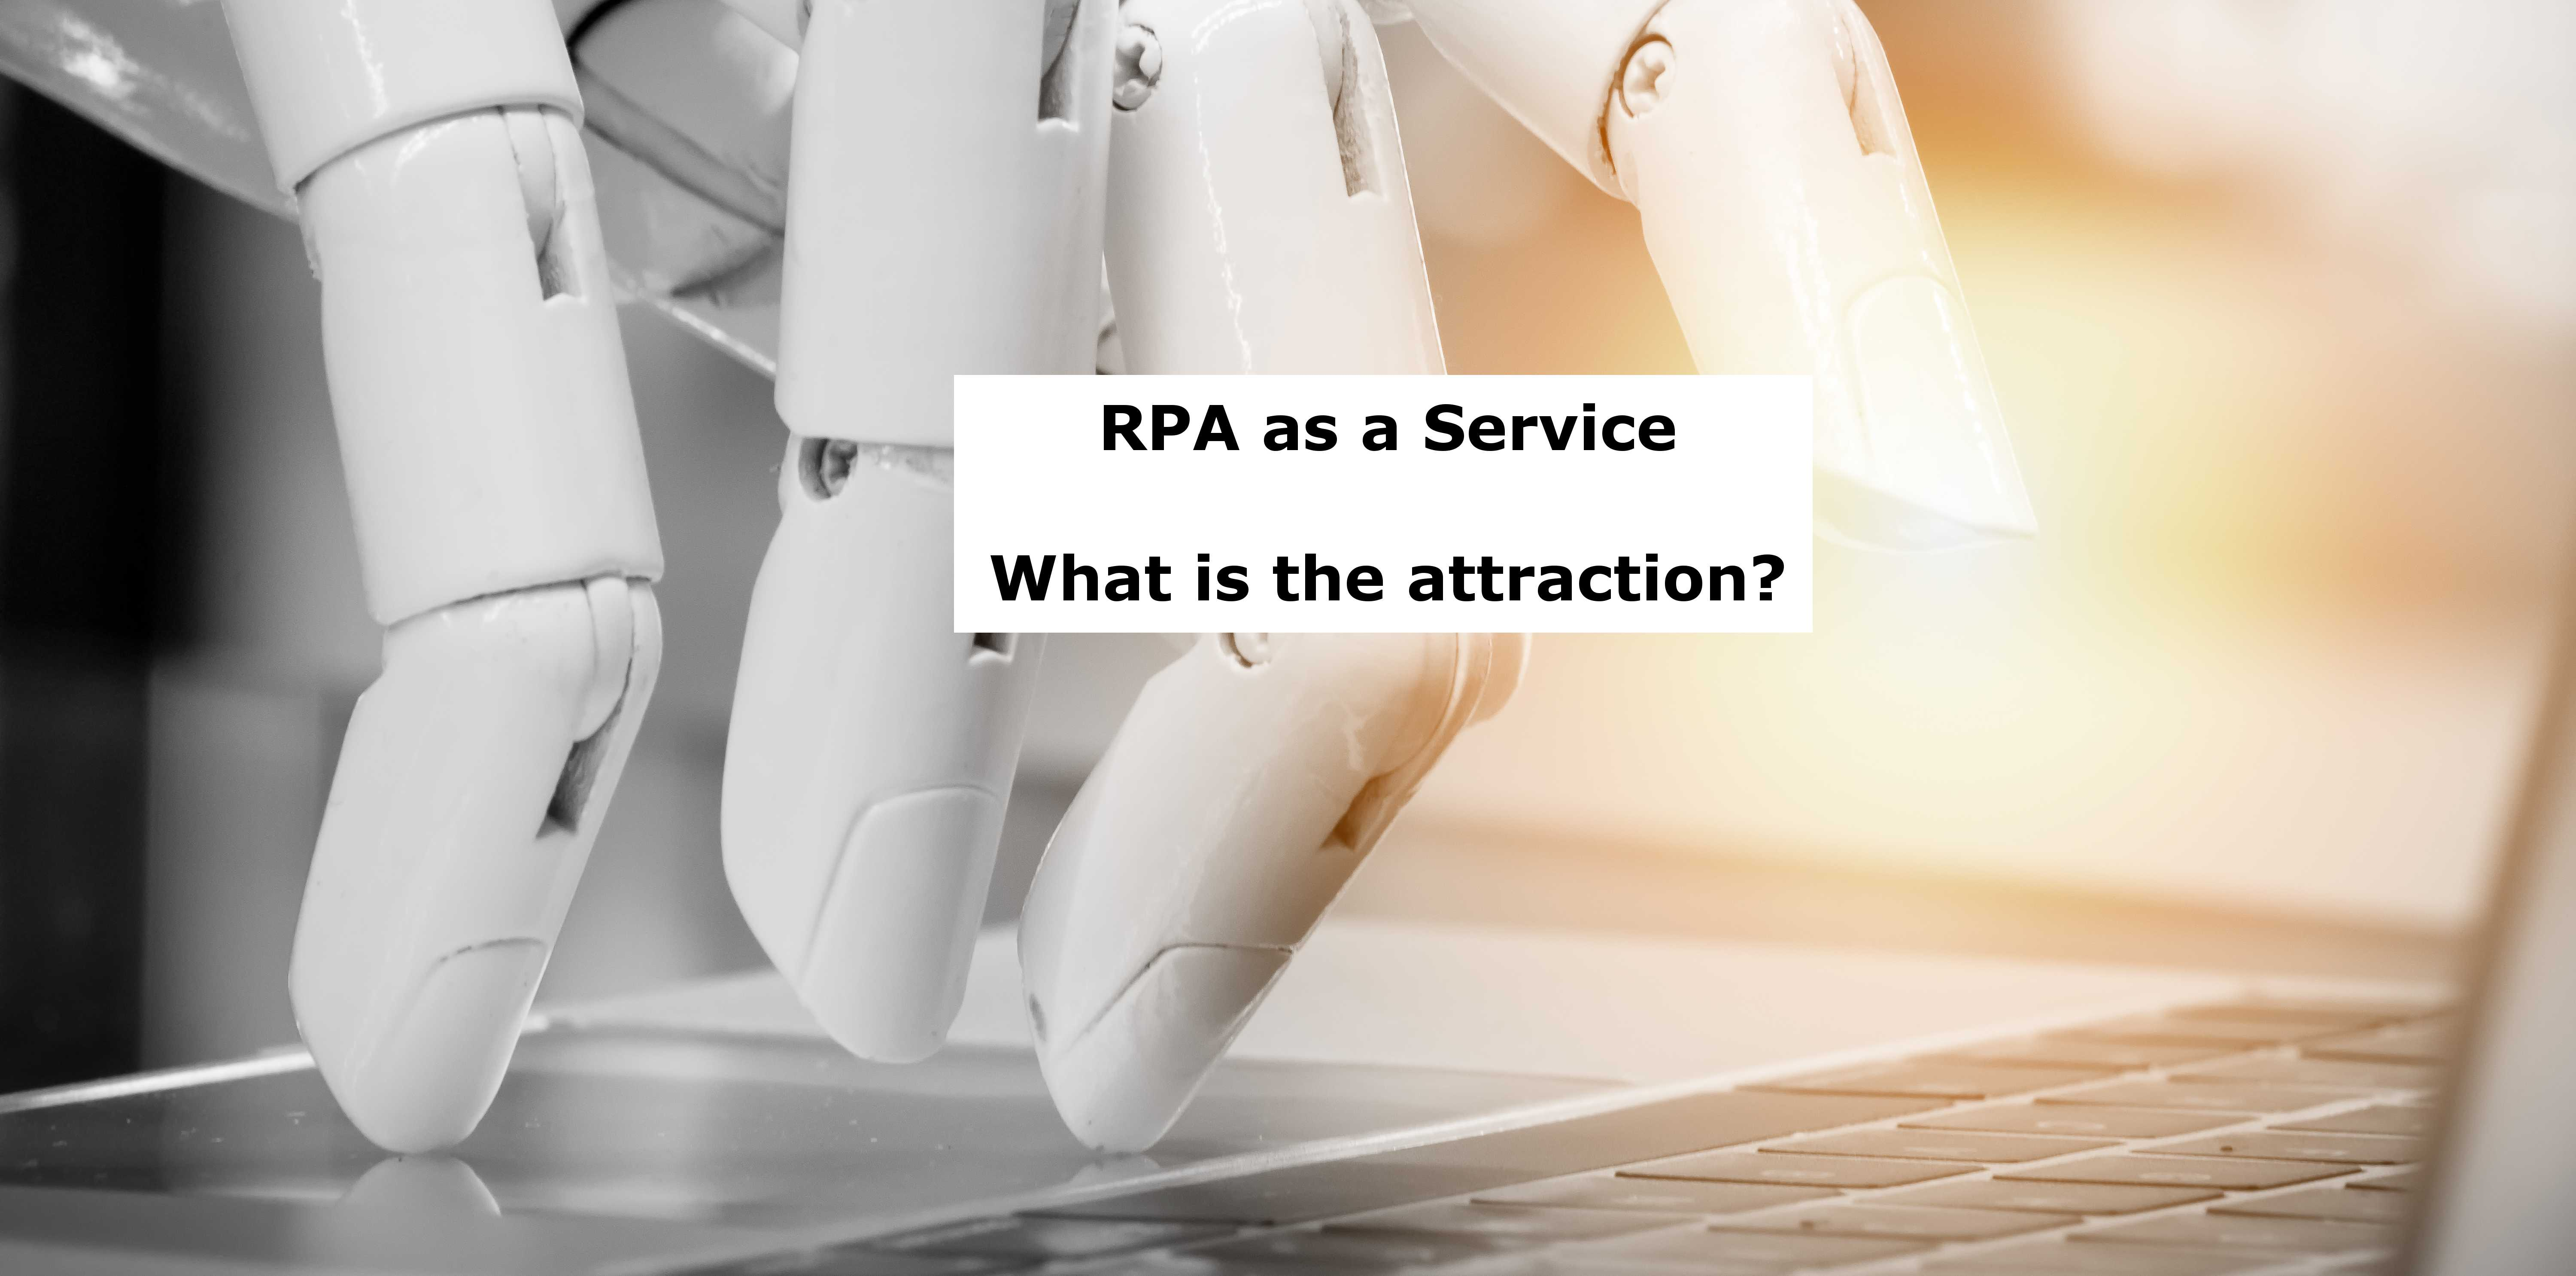 Automation - RPA as a Service (RPAaaS)